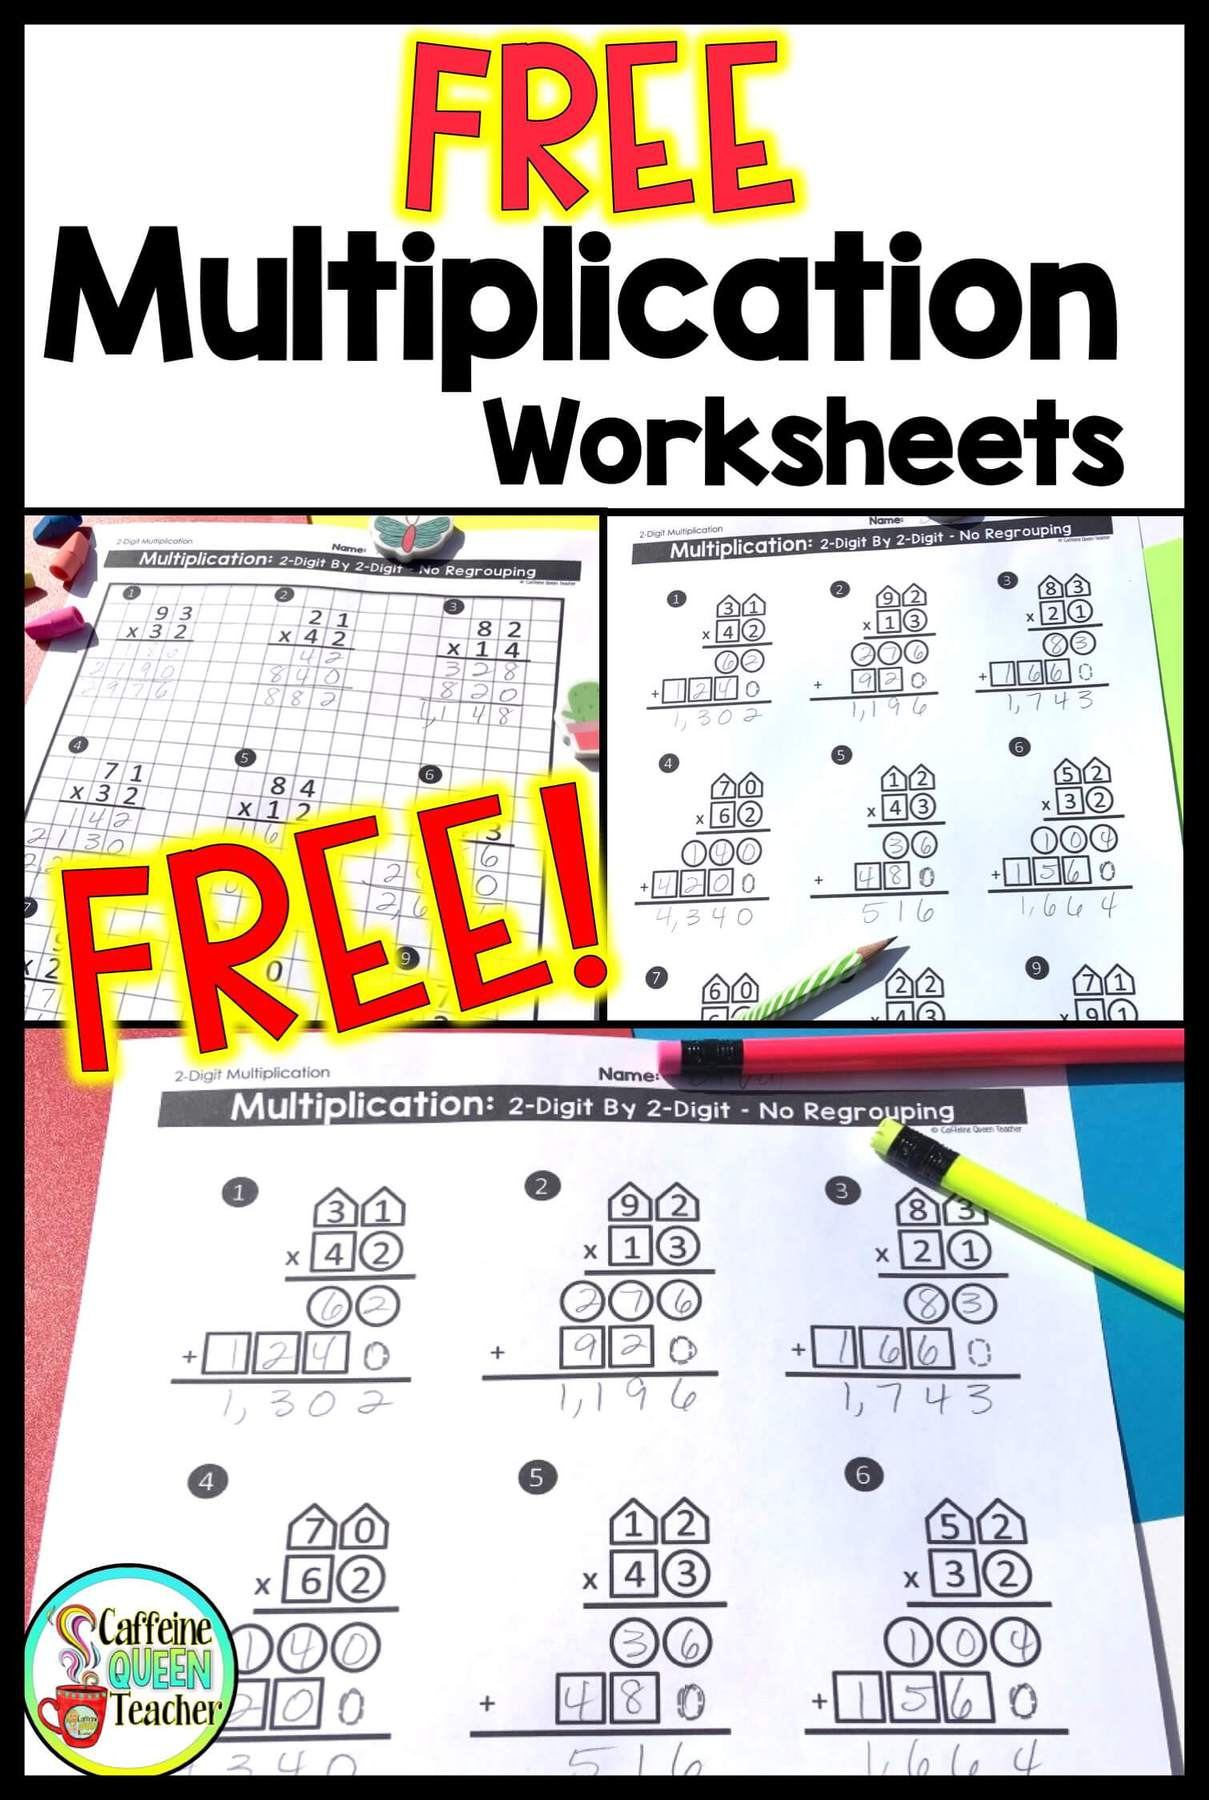 hight resolution of 2-Digit Multiplication Worksheets: Differentiated - Caffeine Queen Teacher